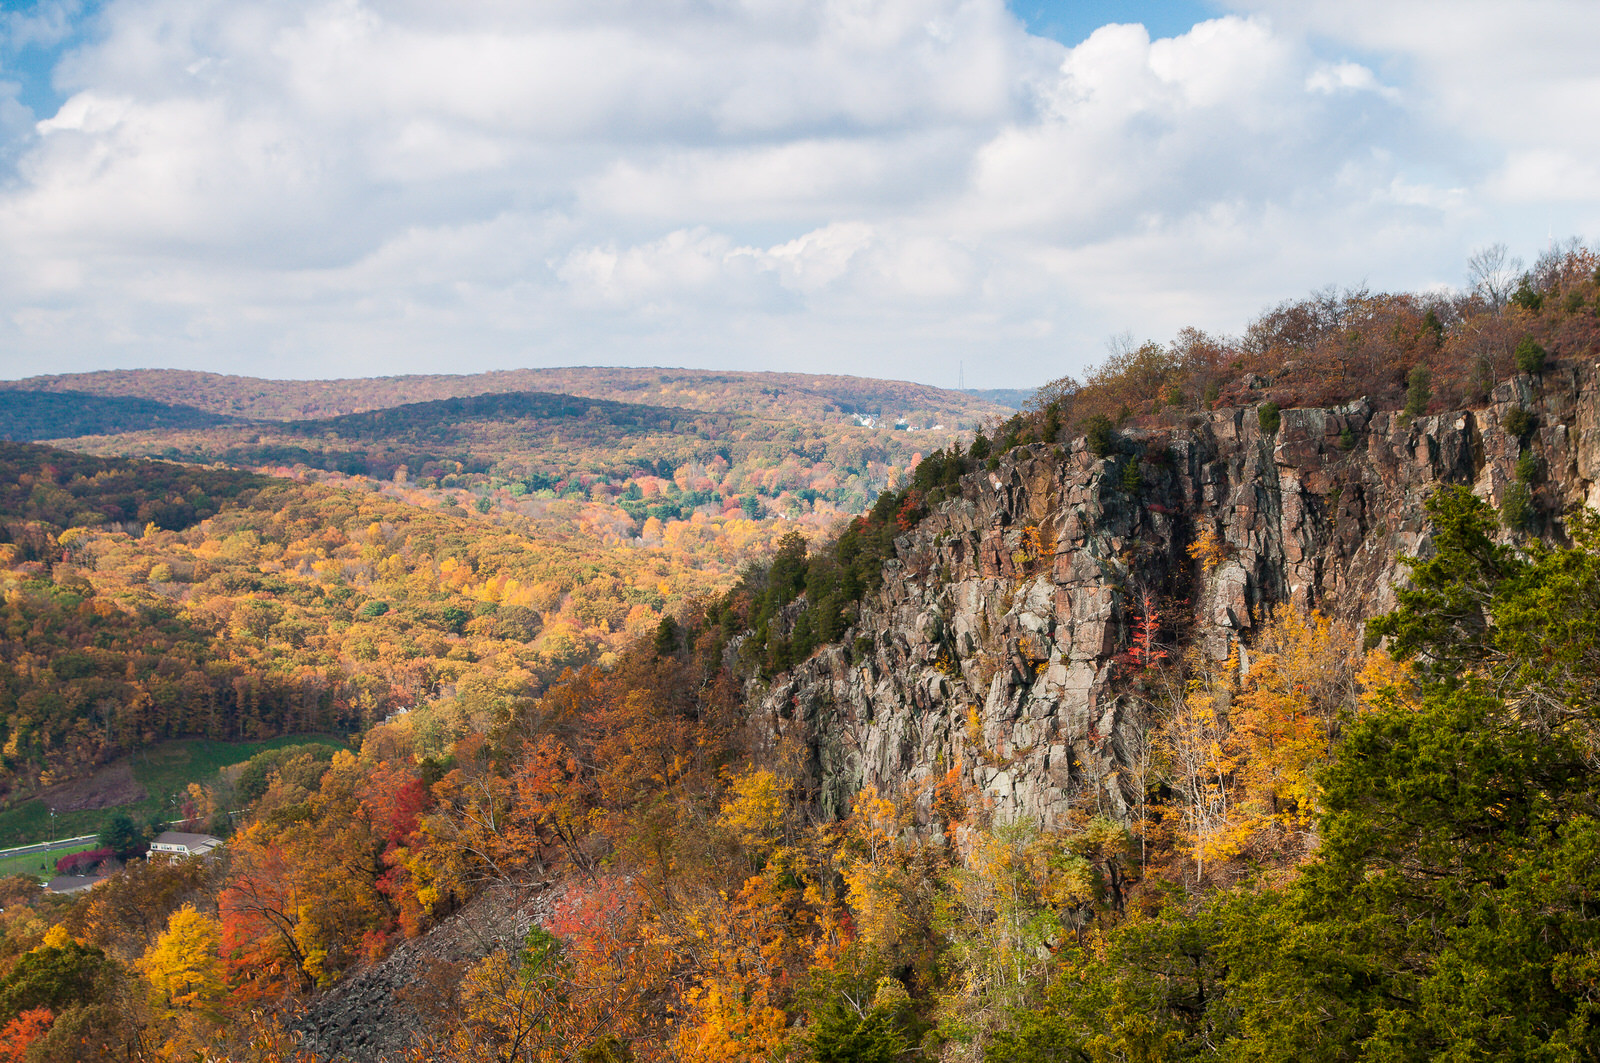 photo: Sleeping Giant rises high above the woodlands of the surrounding valley. Photo by Justin Coleman.